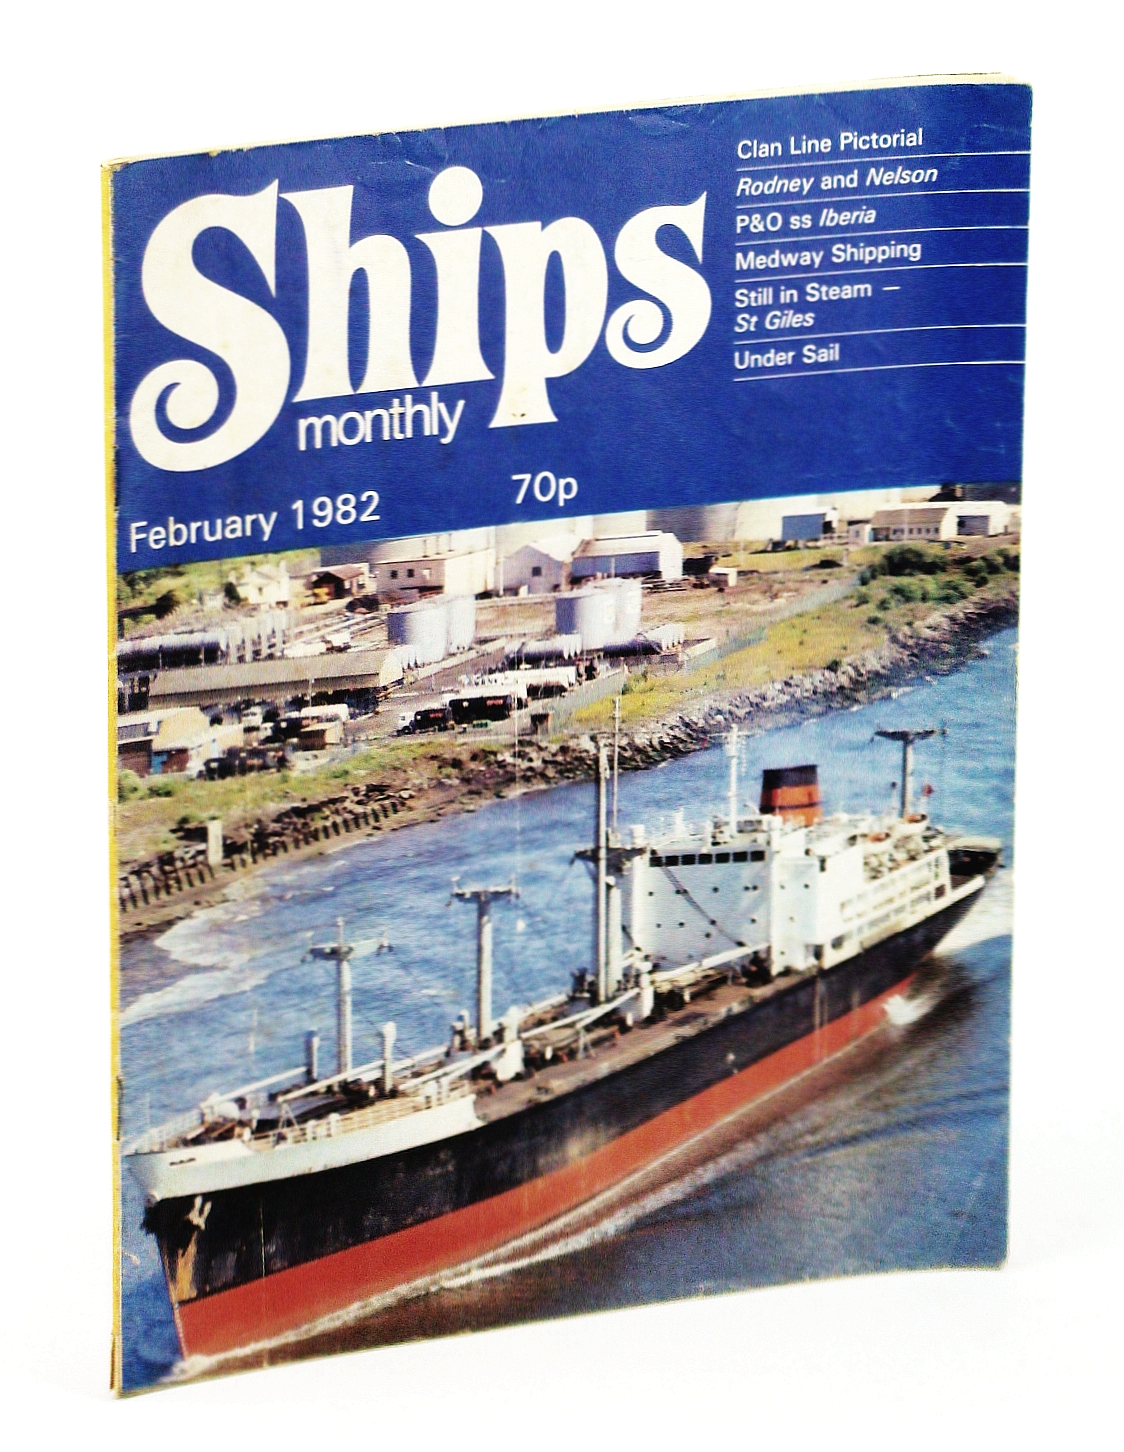 Image for Ships Monthly - The Magazine for Shiplovers Ashore and Afloat, February 1982 - P & O SS Iberia